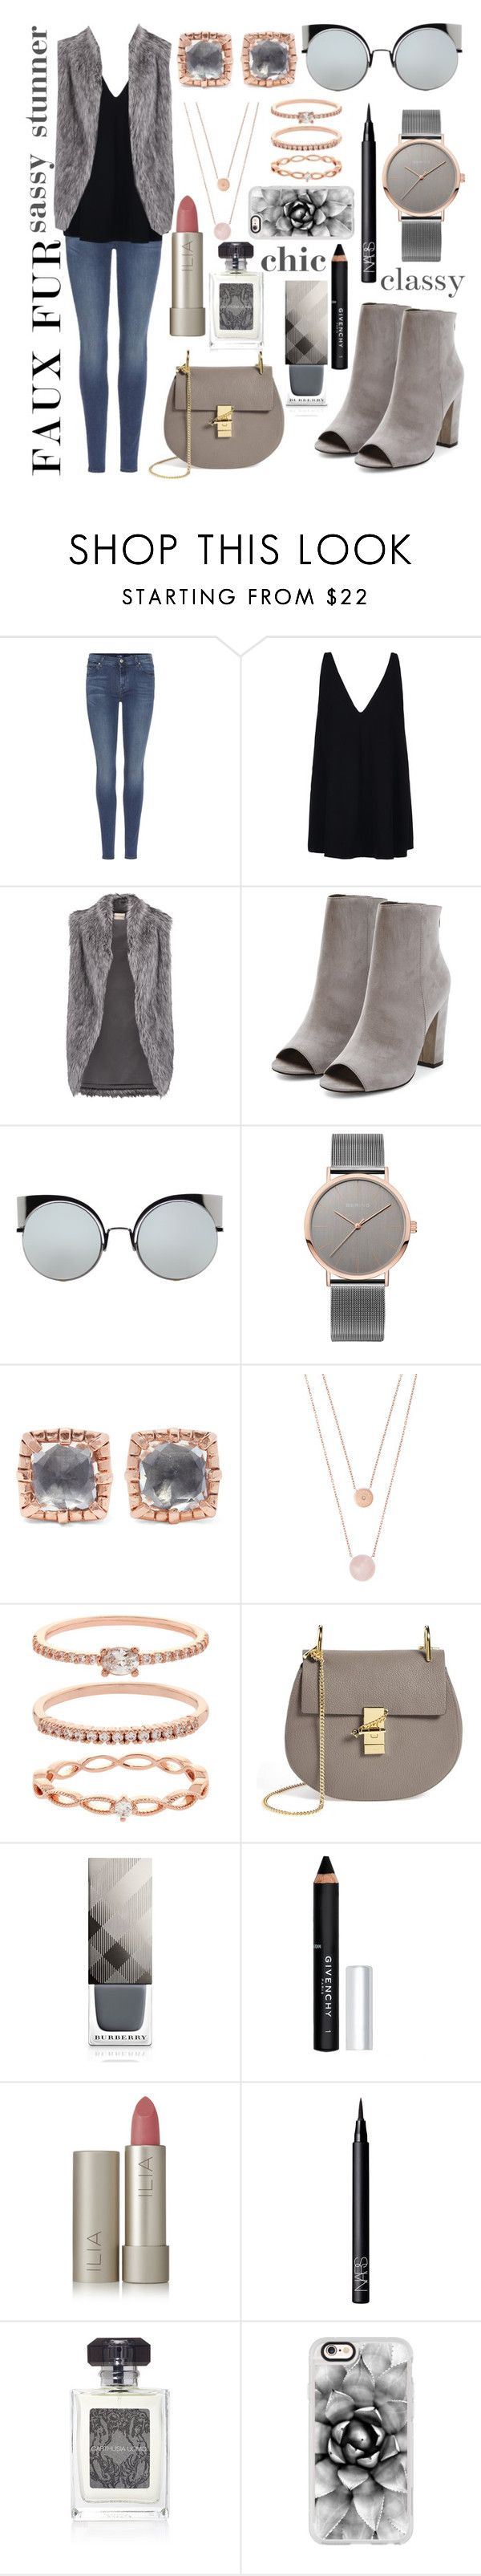 """""""faux fur chic😘"""" by dixiepixiefashionista ❤ liked on Polyvore featuring 7 For All Mankind, STELLA McCARTNEY, DKNY, Fendi, Larkspur & Hawk, Michael Kors, Accessorize, Chloé, Burberry and Givenchy"""